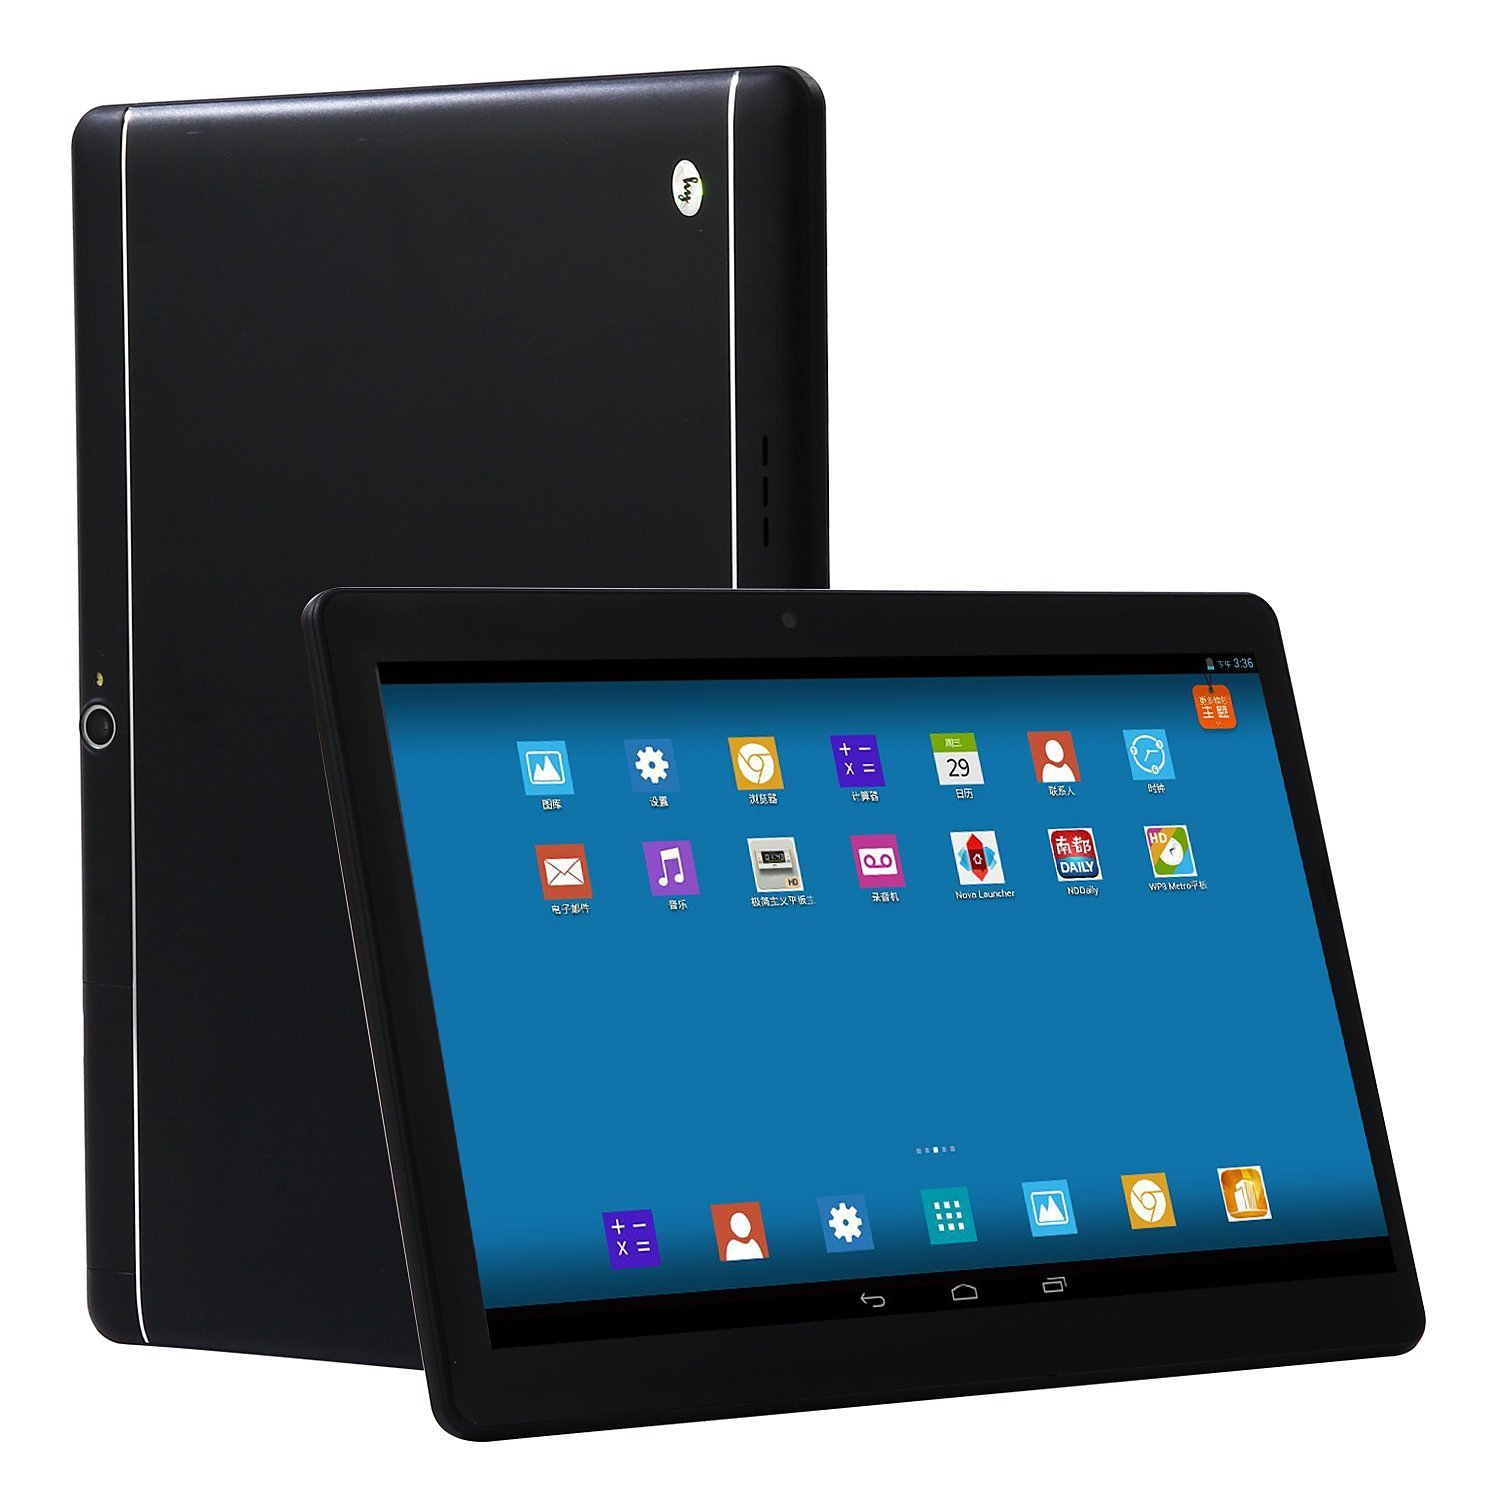 Hot New Tablets Android Octa Core 64GB ROM Dual Camera an...